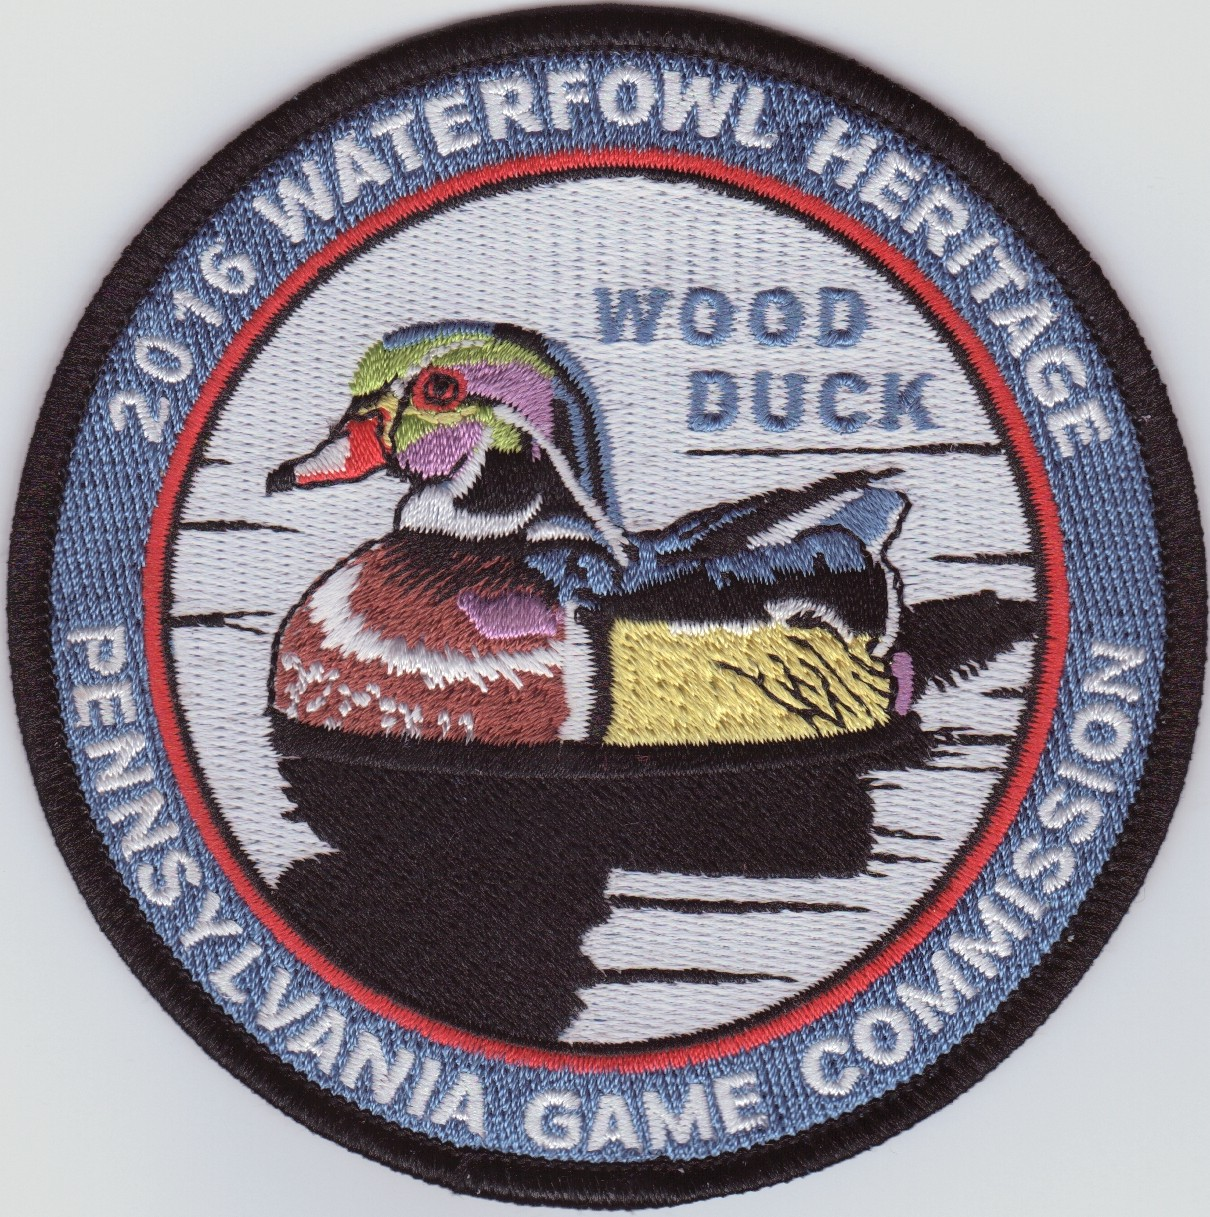 Game Commission Circular Patch